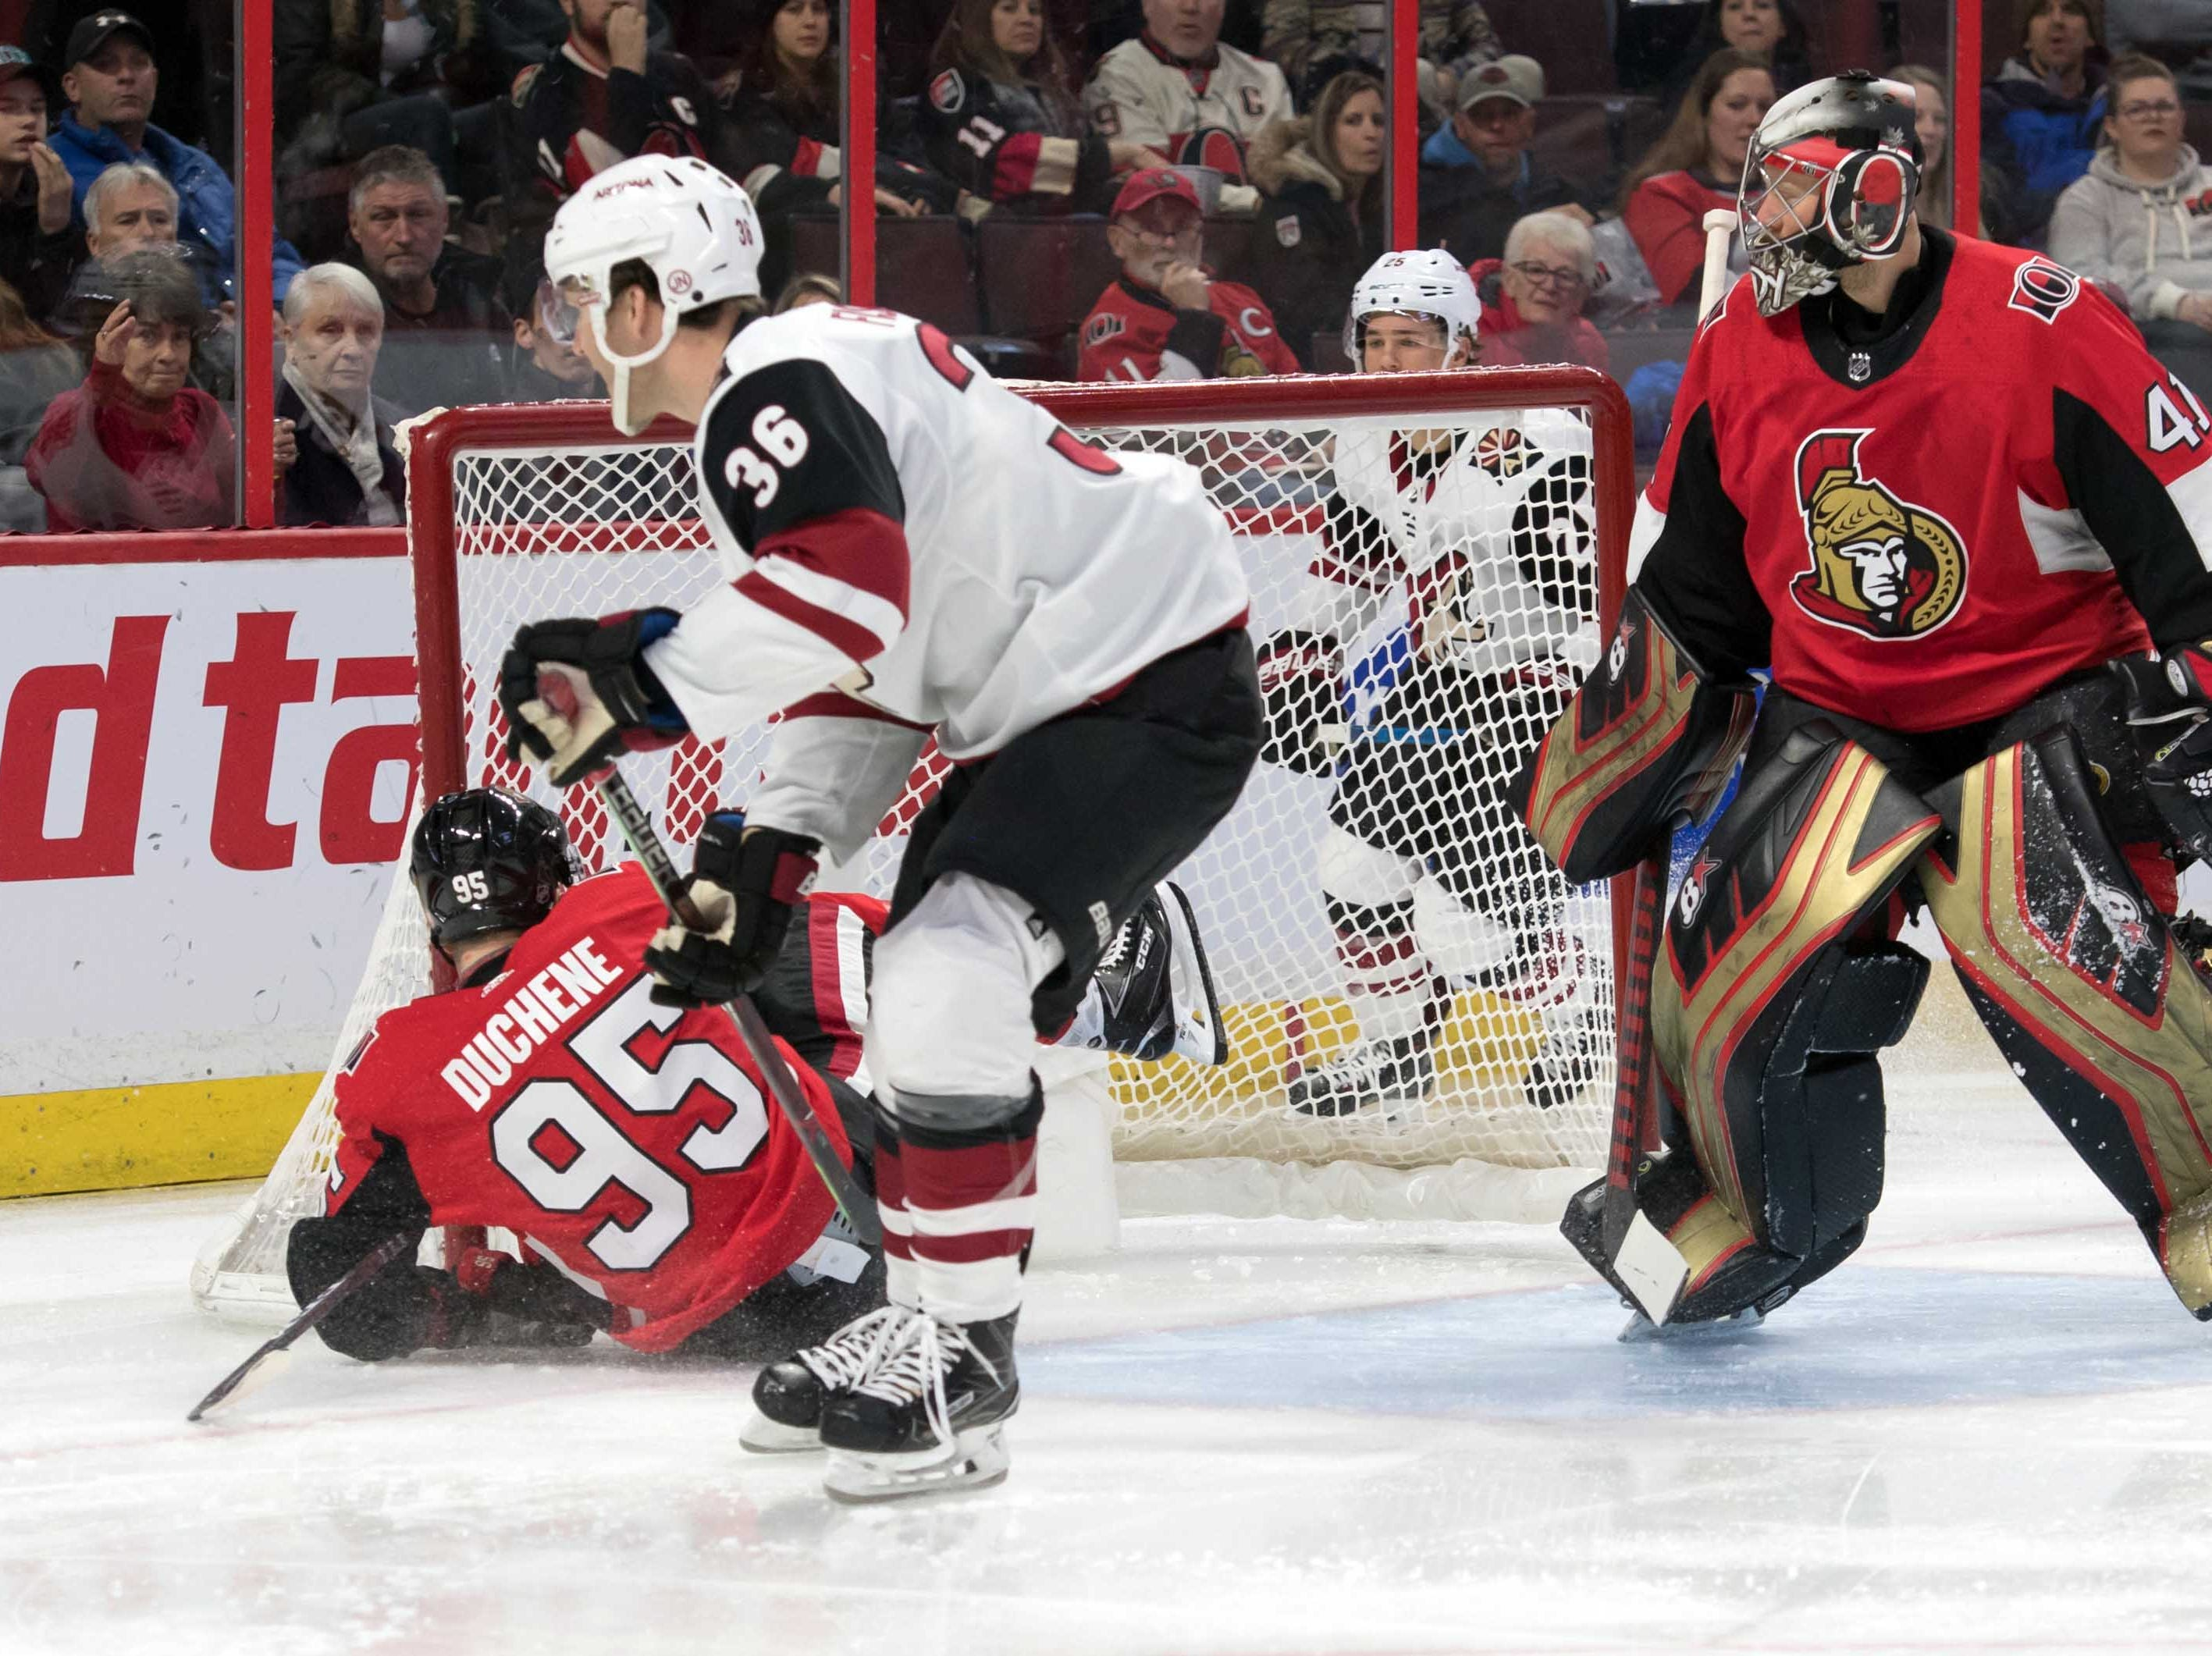 Jan 22, 2019; Ottawa, Ontario, CAN; Ottawa Senators center Matt Duchene (95) is driven into the net by Arizona Coyotes right wing Christian Fischer (36) in the first period at the Canadian Tire Centre. Mandatory Credit: Marc DesRosiers-USA TODAY Sports